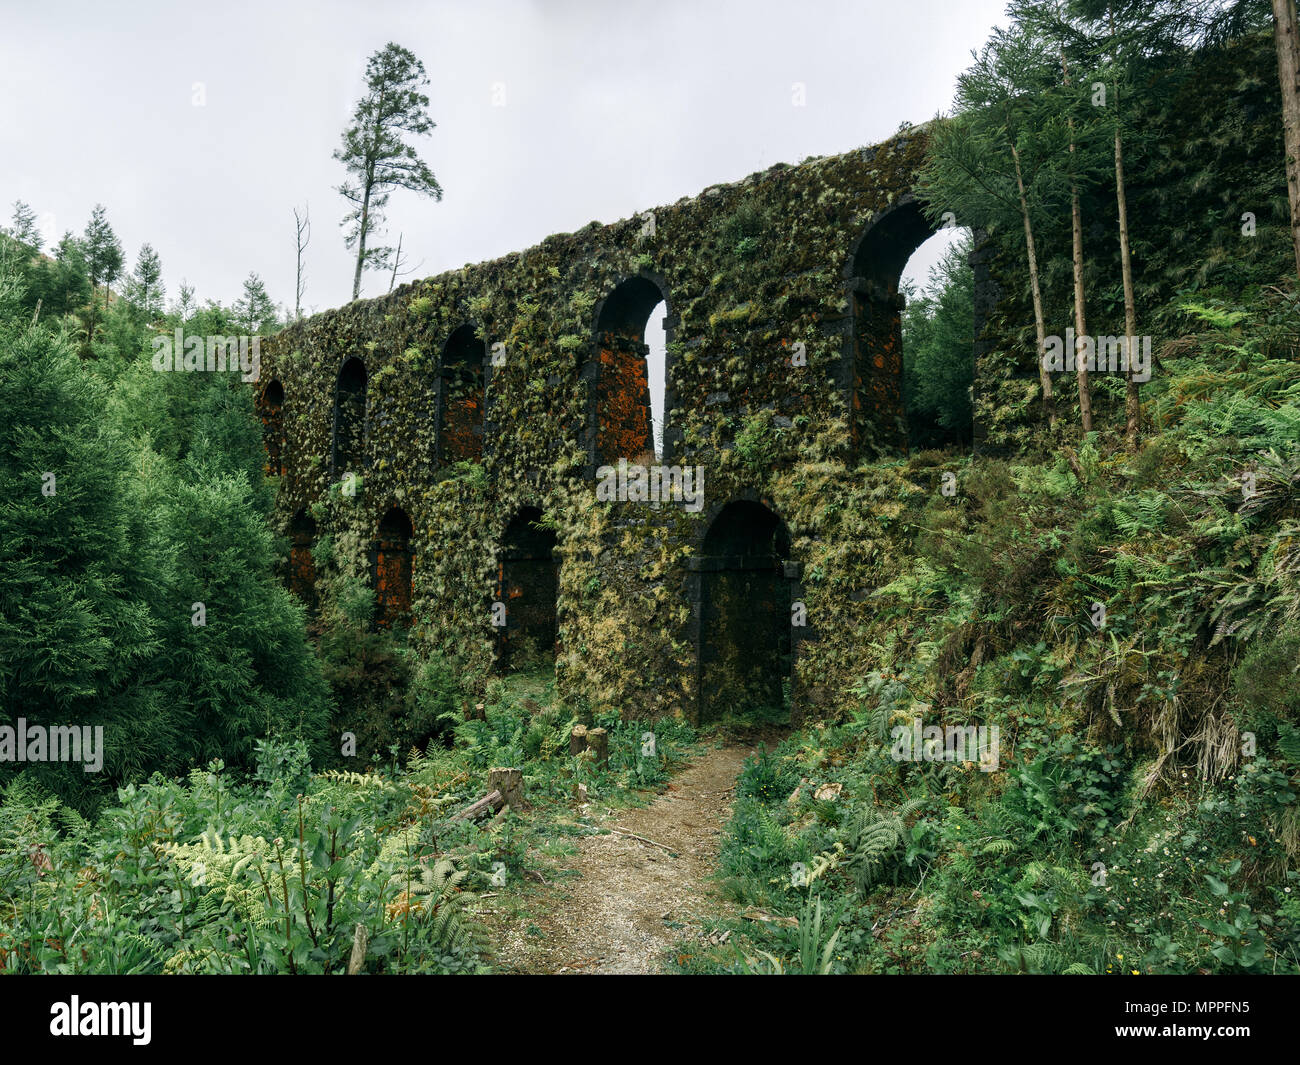 The 'Muro of the Nove Janelas' (Wall of the Nine Windows), the most famous part of the old aqueducts at São Miguel Island, Azores. - Stock Image